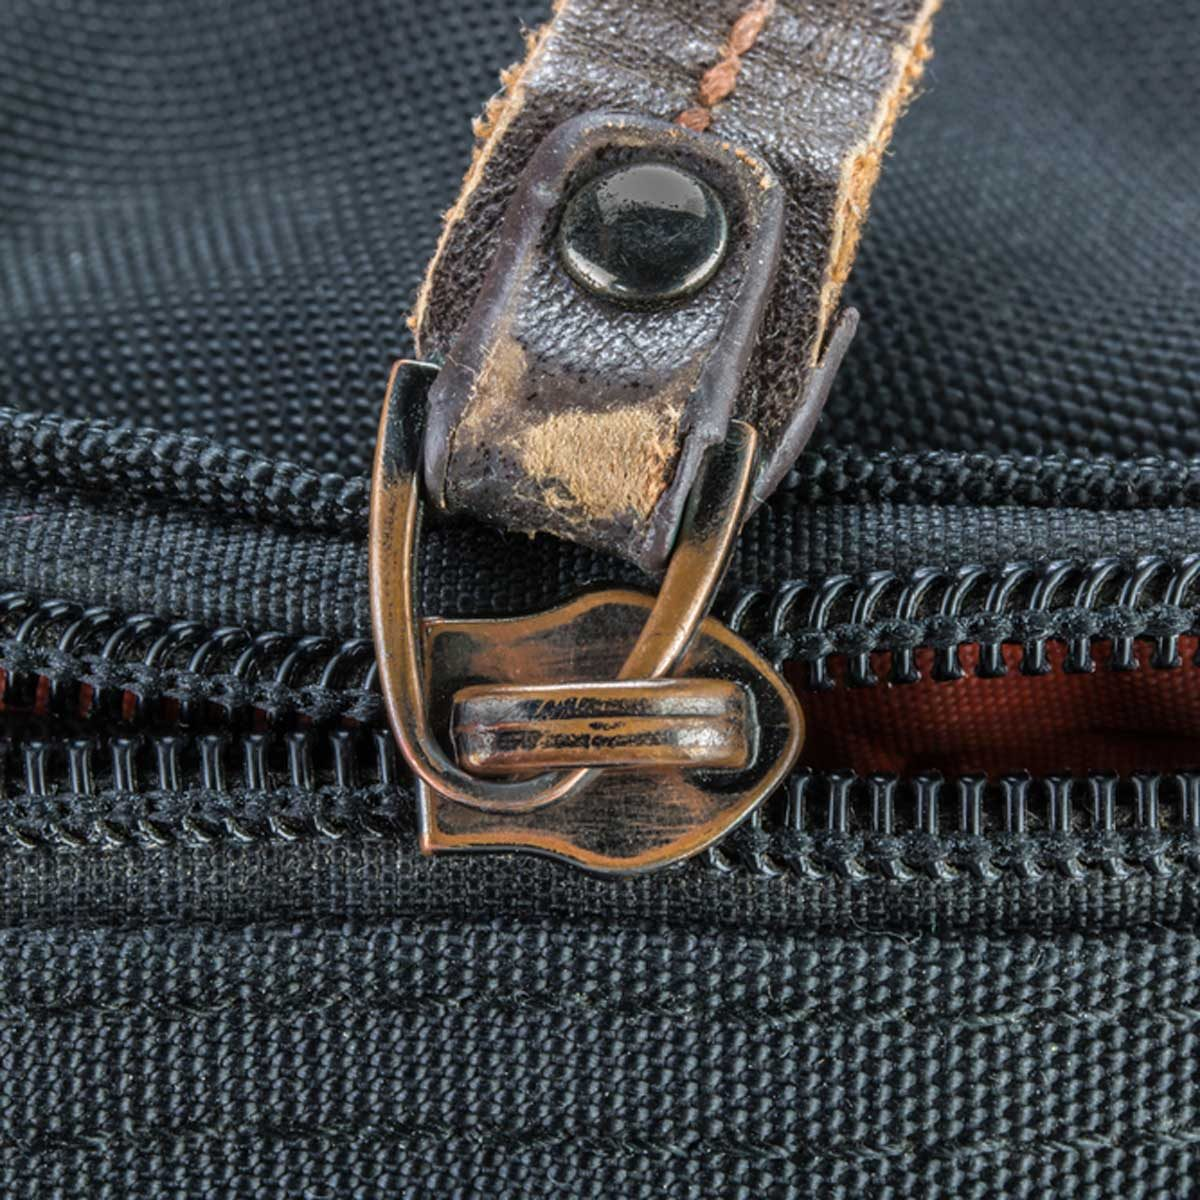 how to fix a zipper on a bag